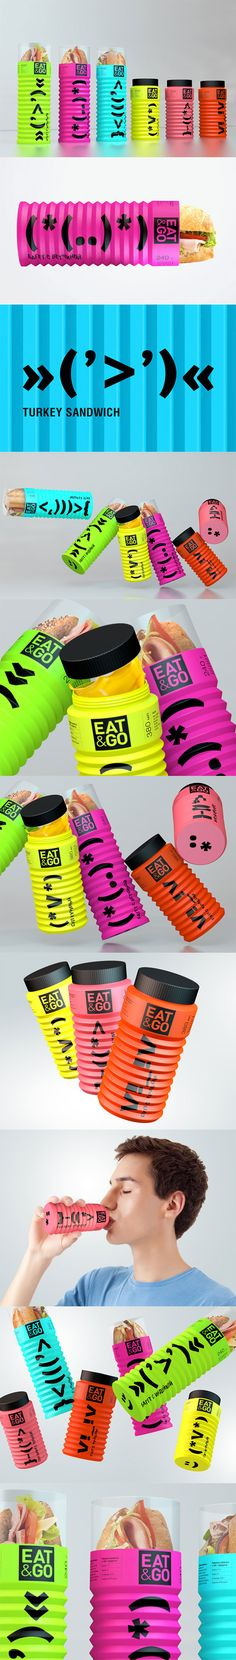 Eat and Go Concept  @Packaging of the World